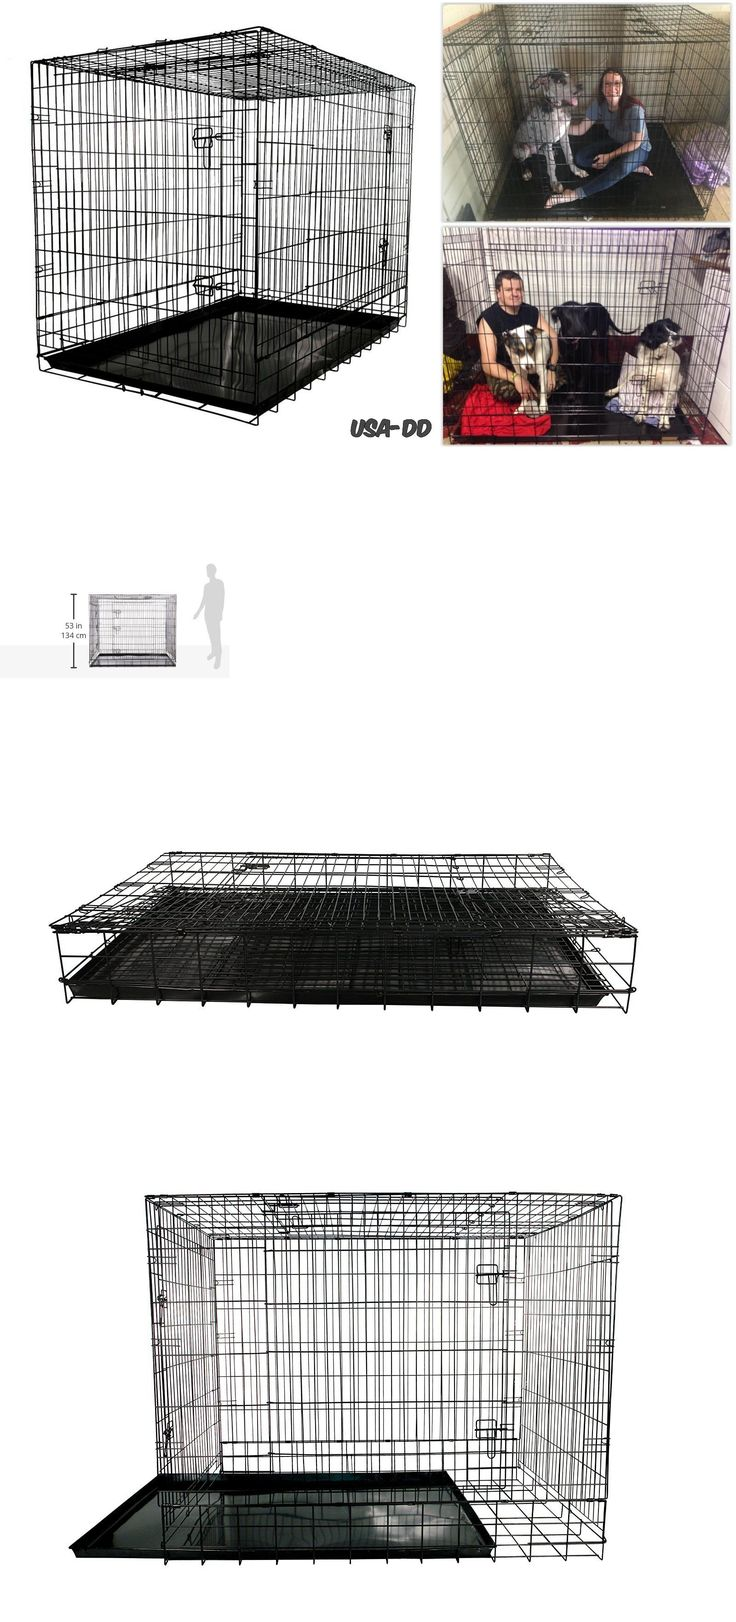 Cages and Crates 121851: Xxl Folding Dog Crate Wire Metal Puppy Kennel Cage Large Giant Training Houses -> BUY IT NOW ONLY: $176.42 on eBay!